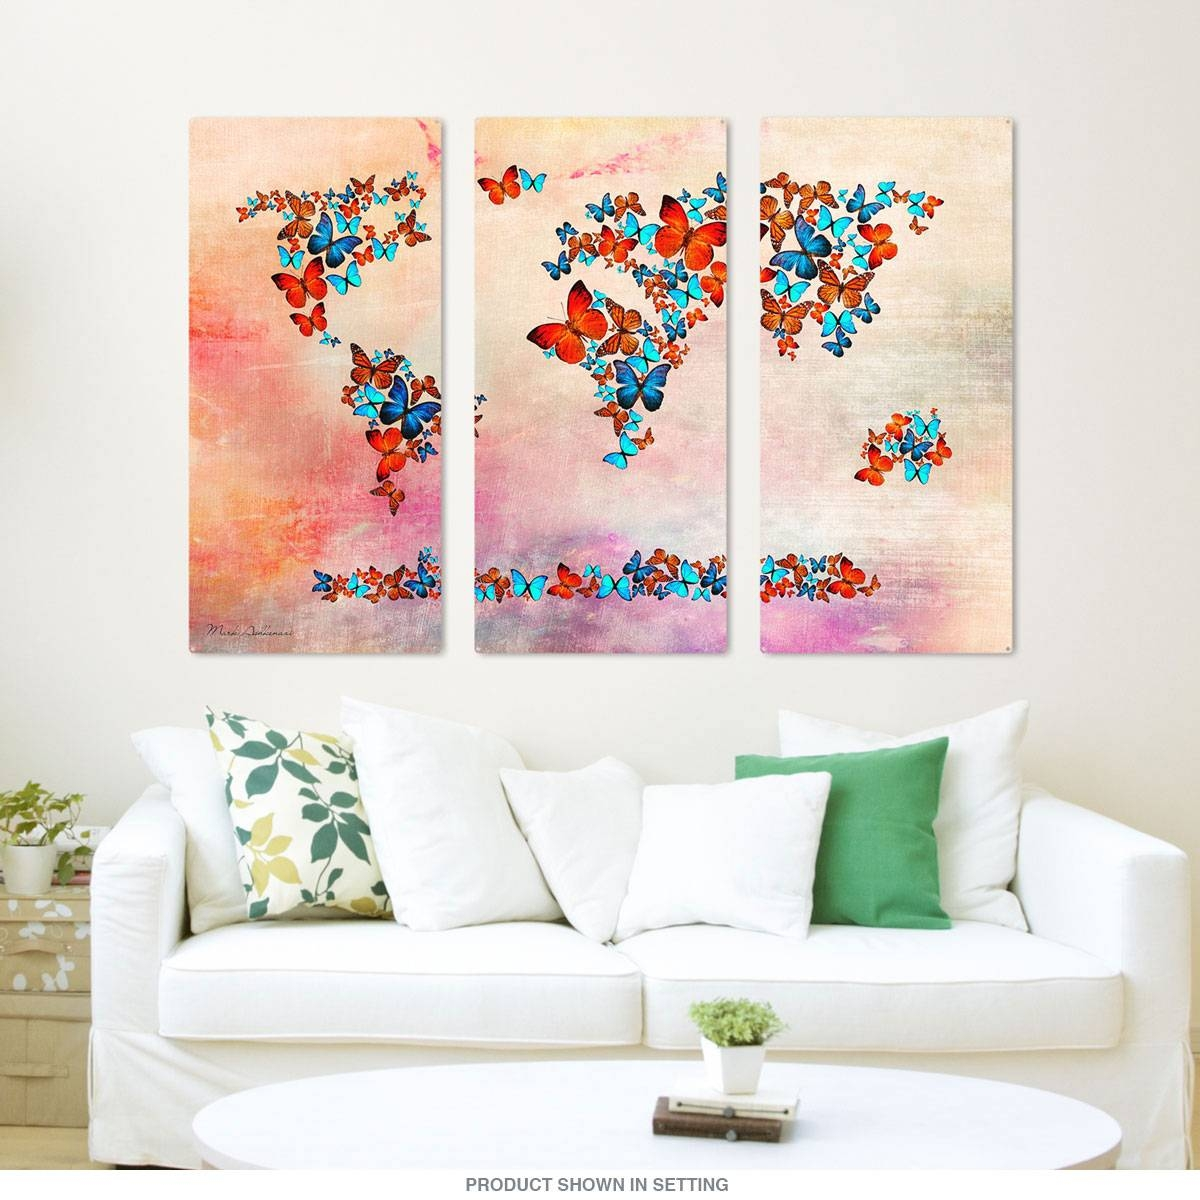 Rainbow Butterfly World Map Triptych Metal Wall Art | Large Sign Intended For 2018 Butterfly Map Wall Art (Gallery 7 of 20)